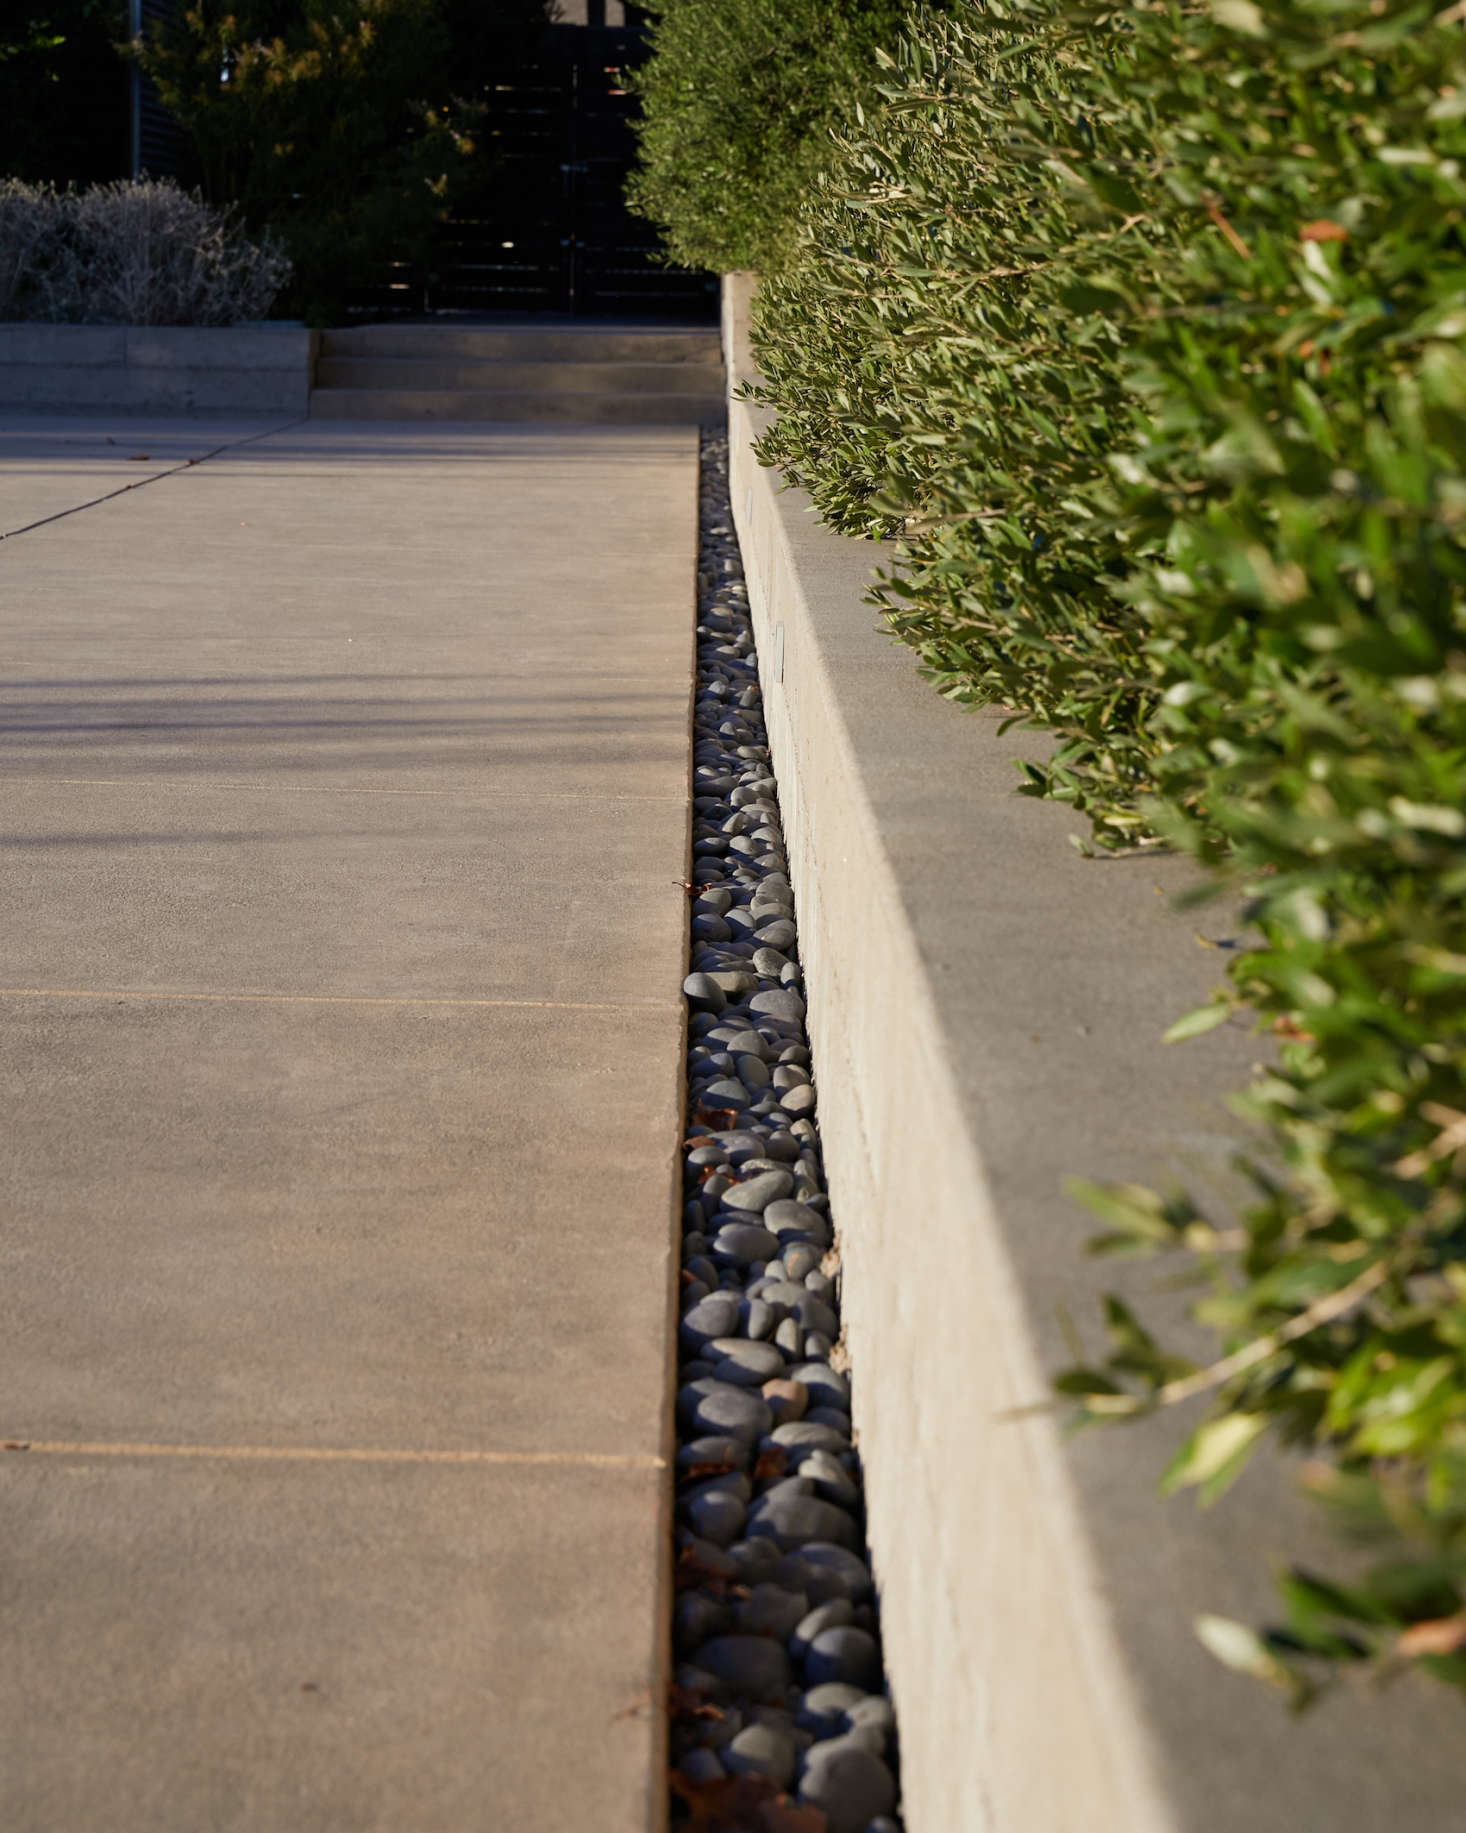 A long strip of polished stones borders the edge of the pool deck, accounting for drainage. To the right, a hedge of dwarf olive &#8